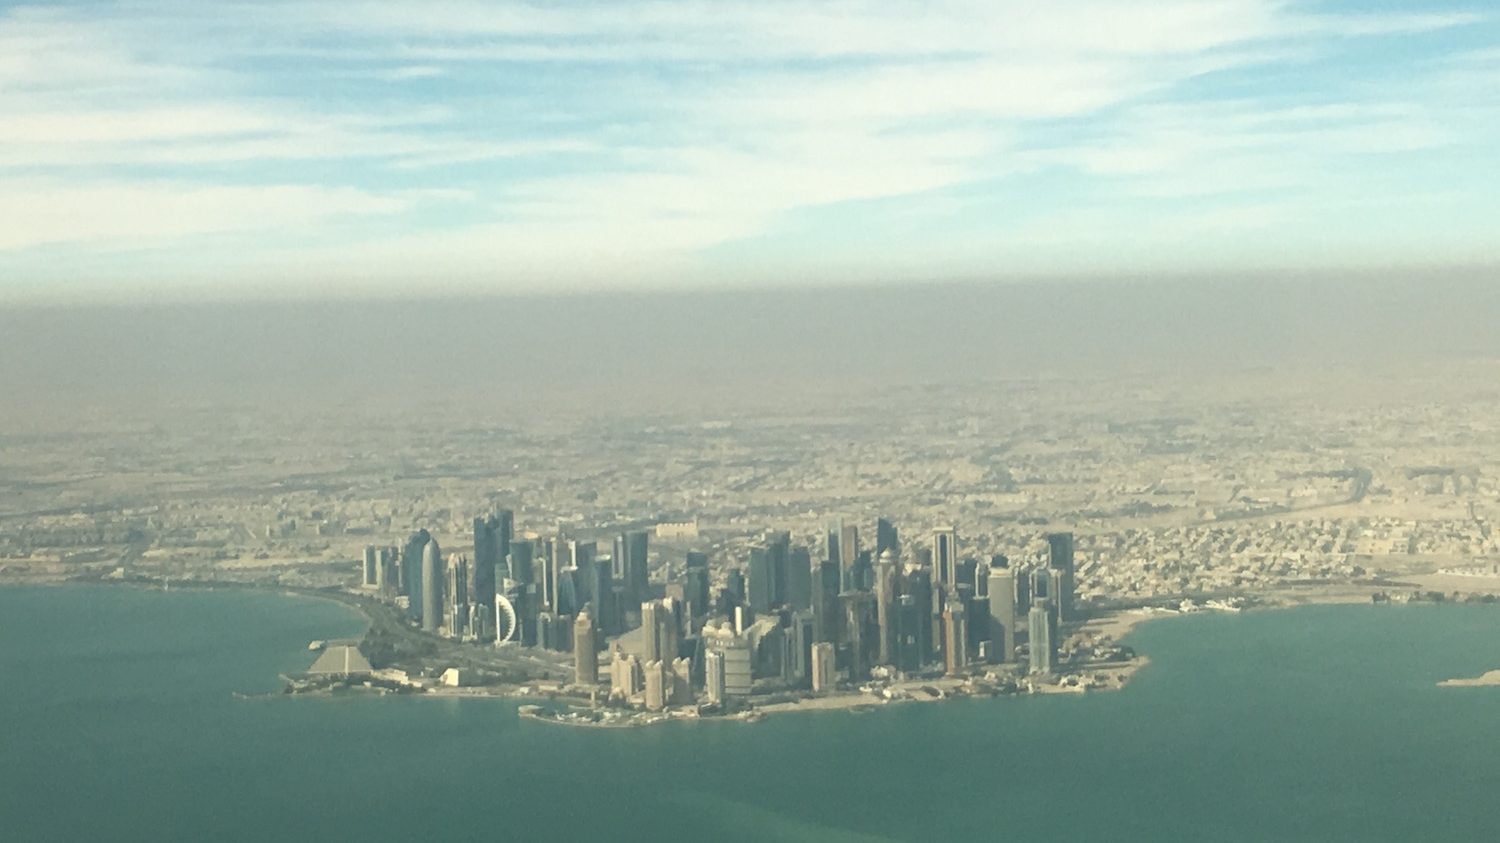 8 hours in Doha